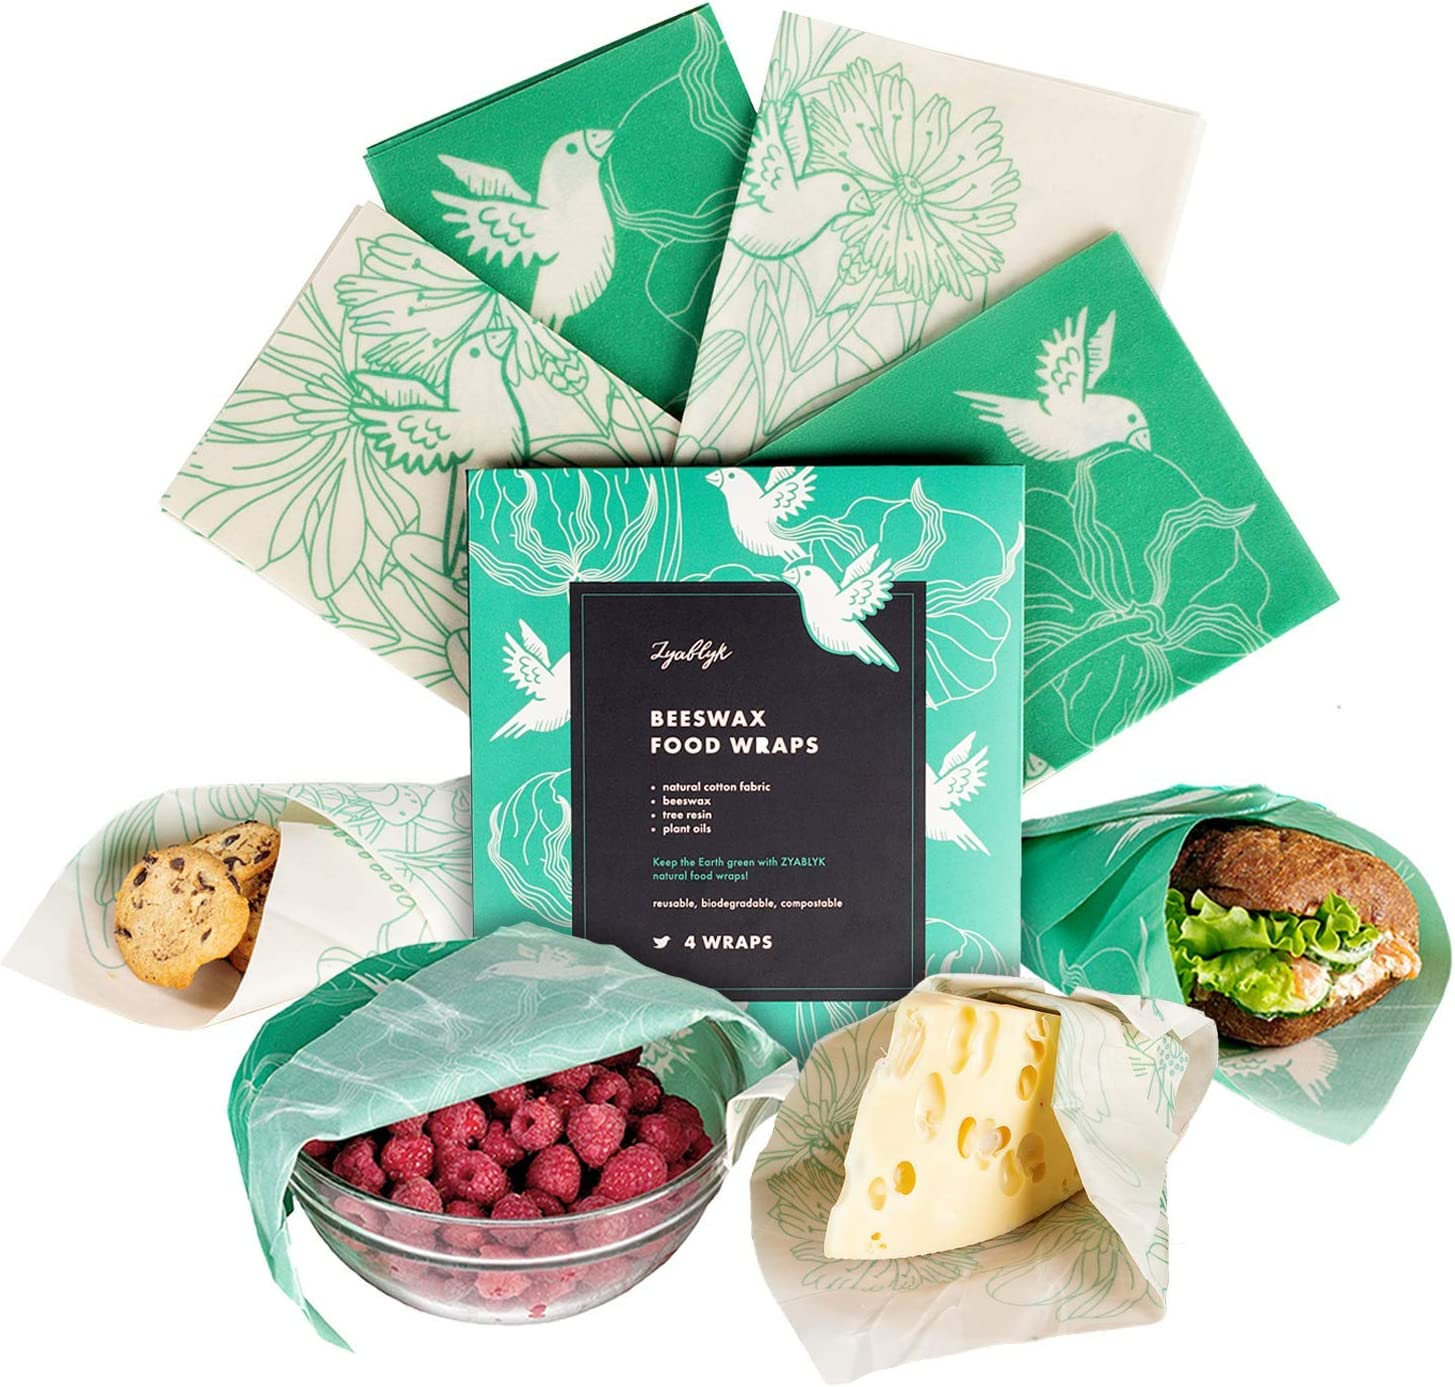 Beeswax Wrap Assorted 4 Large Pack: 2 Large, 2 Medium, Zero Waste Kitchen Food Storage, Reusable Food Wraps, Eco Alternative To Plastic Storage Bags